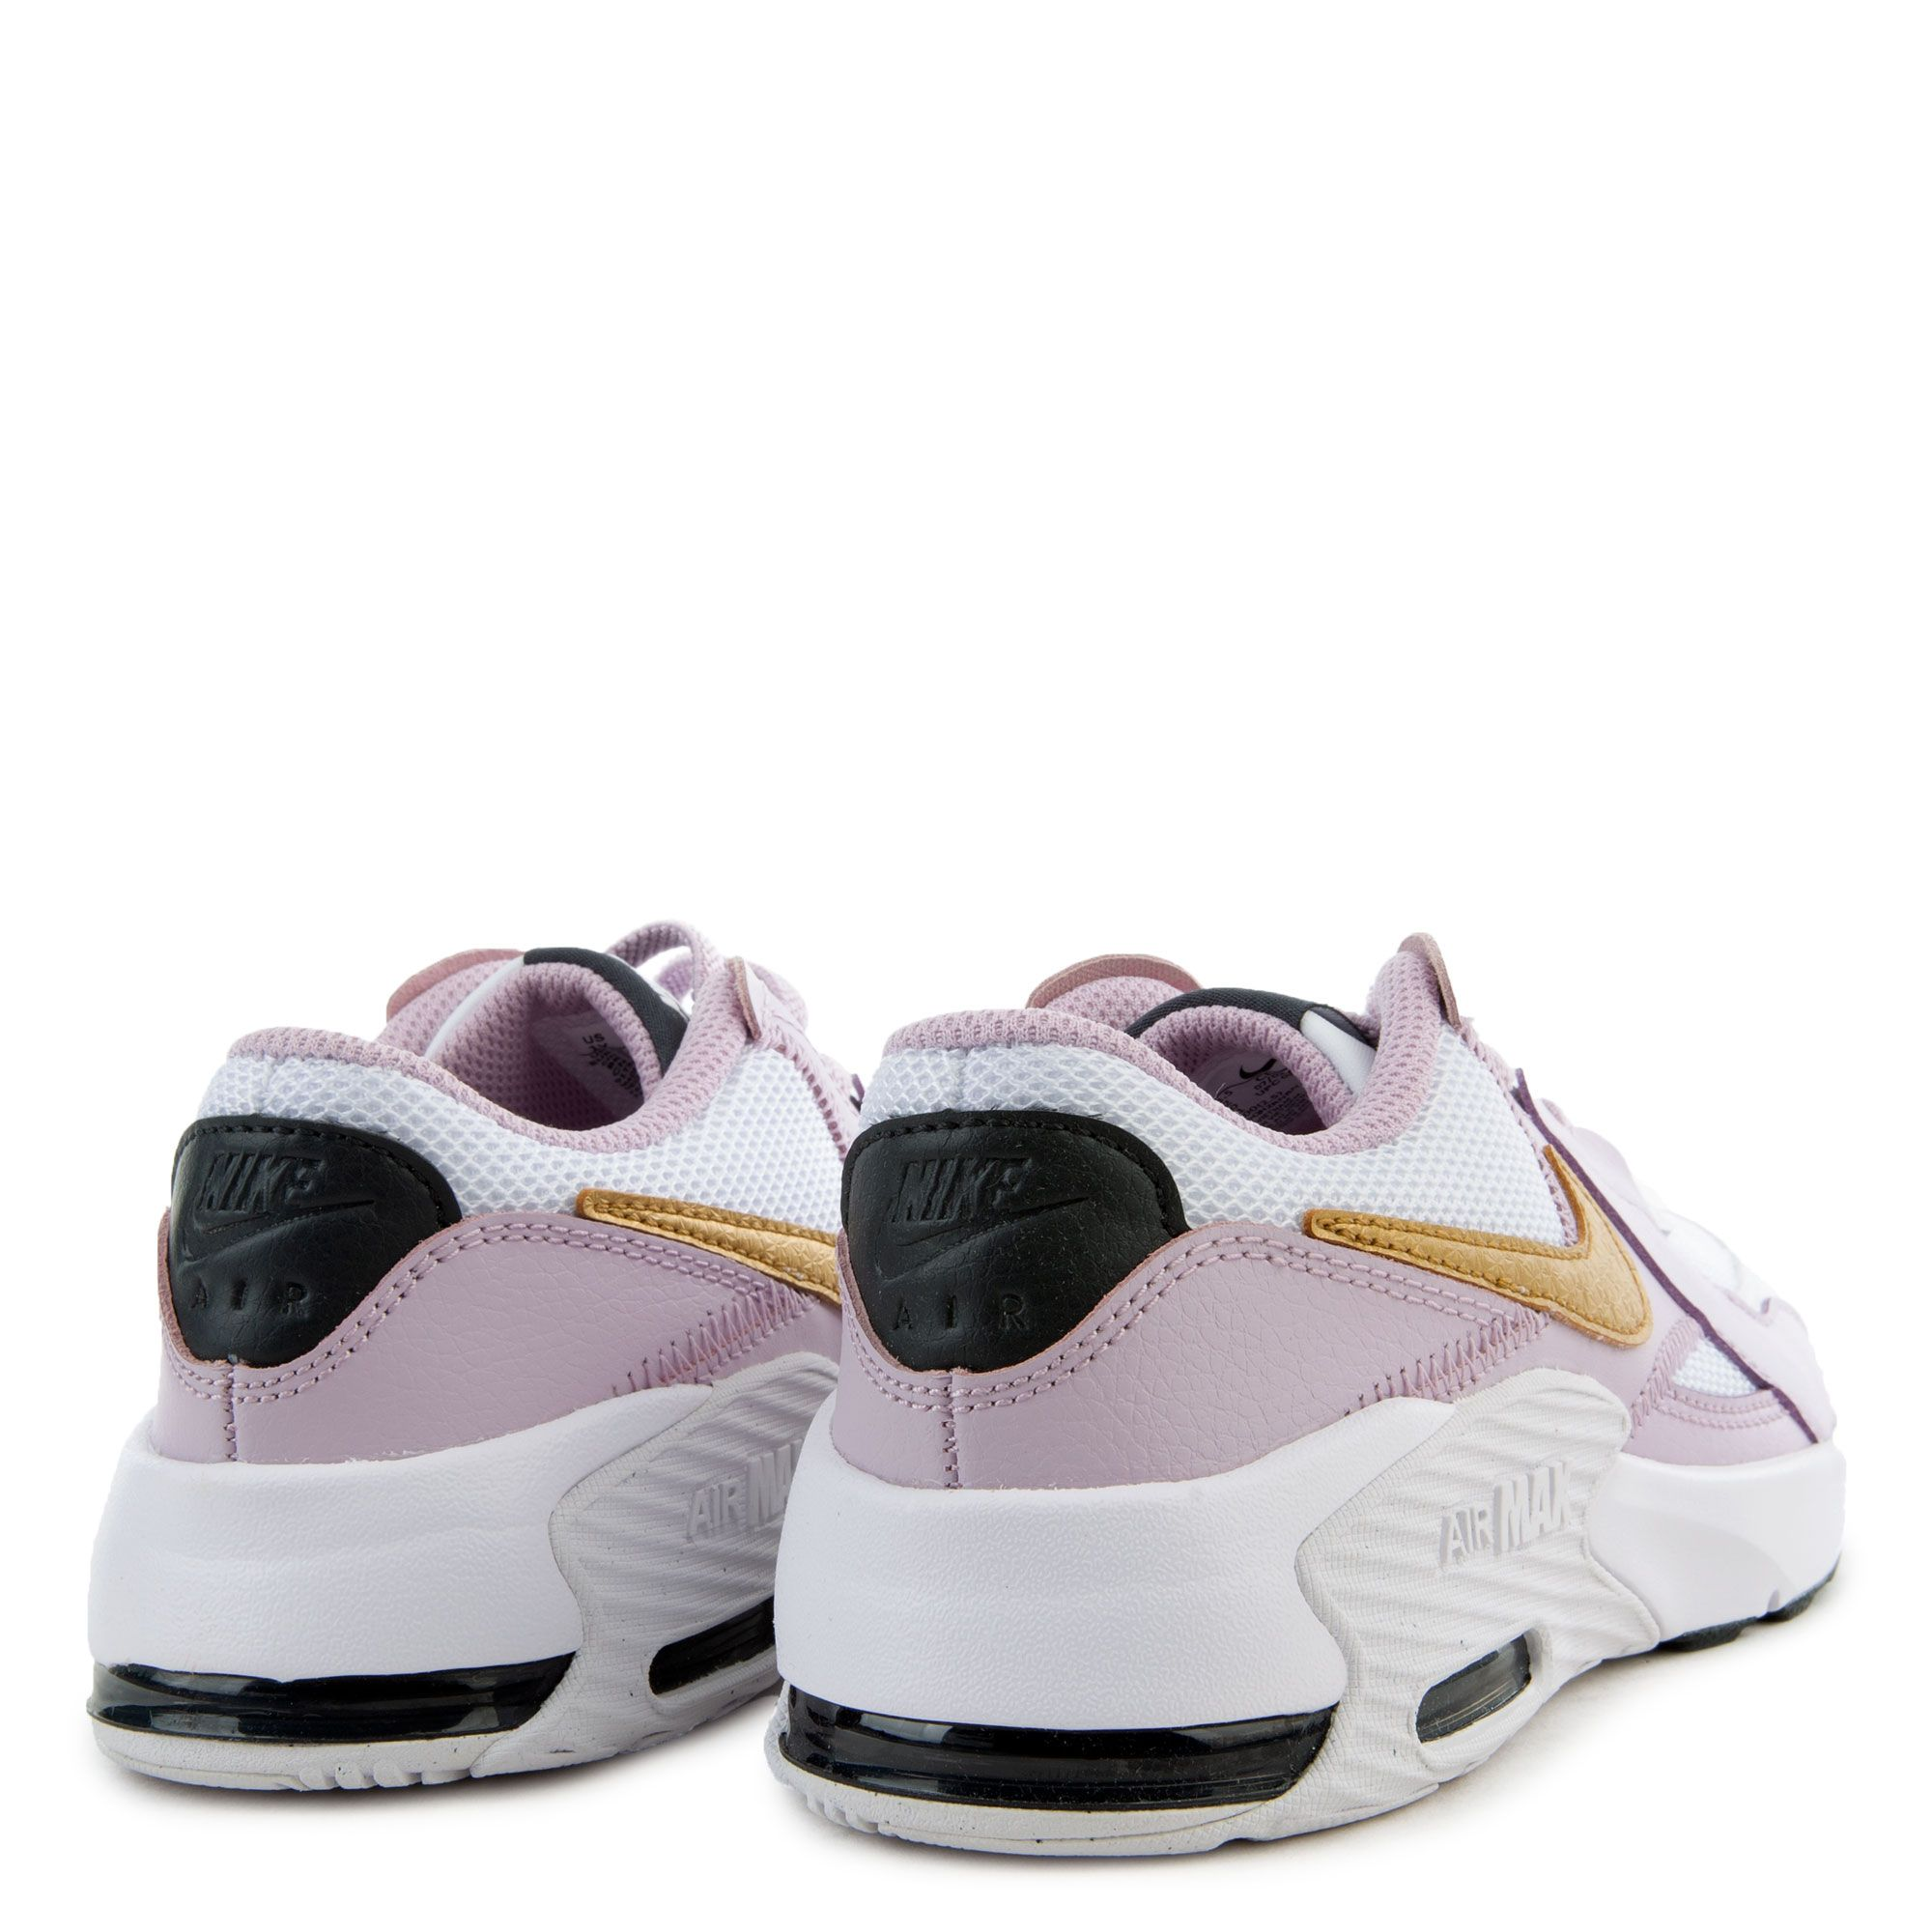 speical offer meet info for PS) Air Max Excee